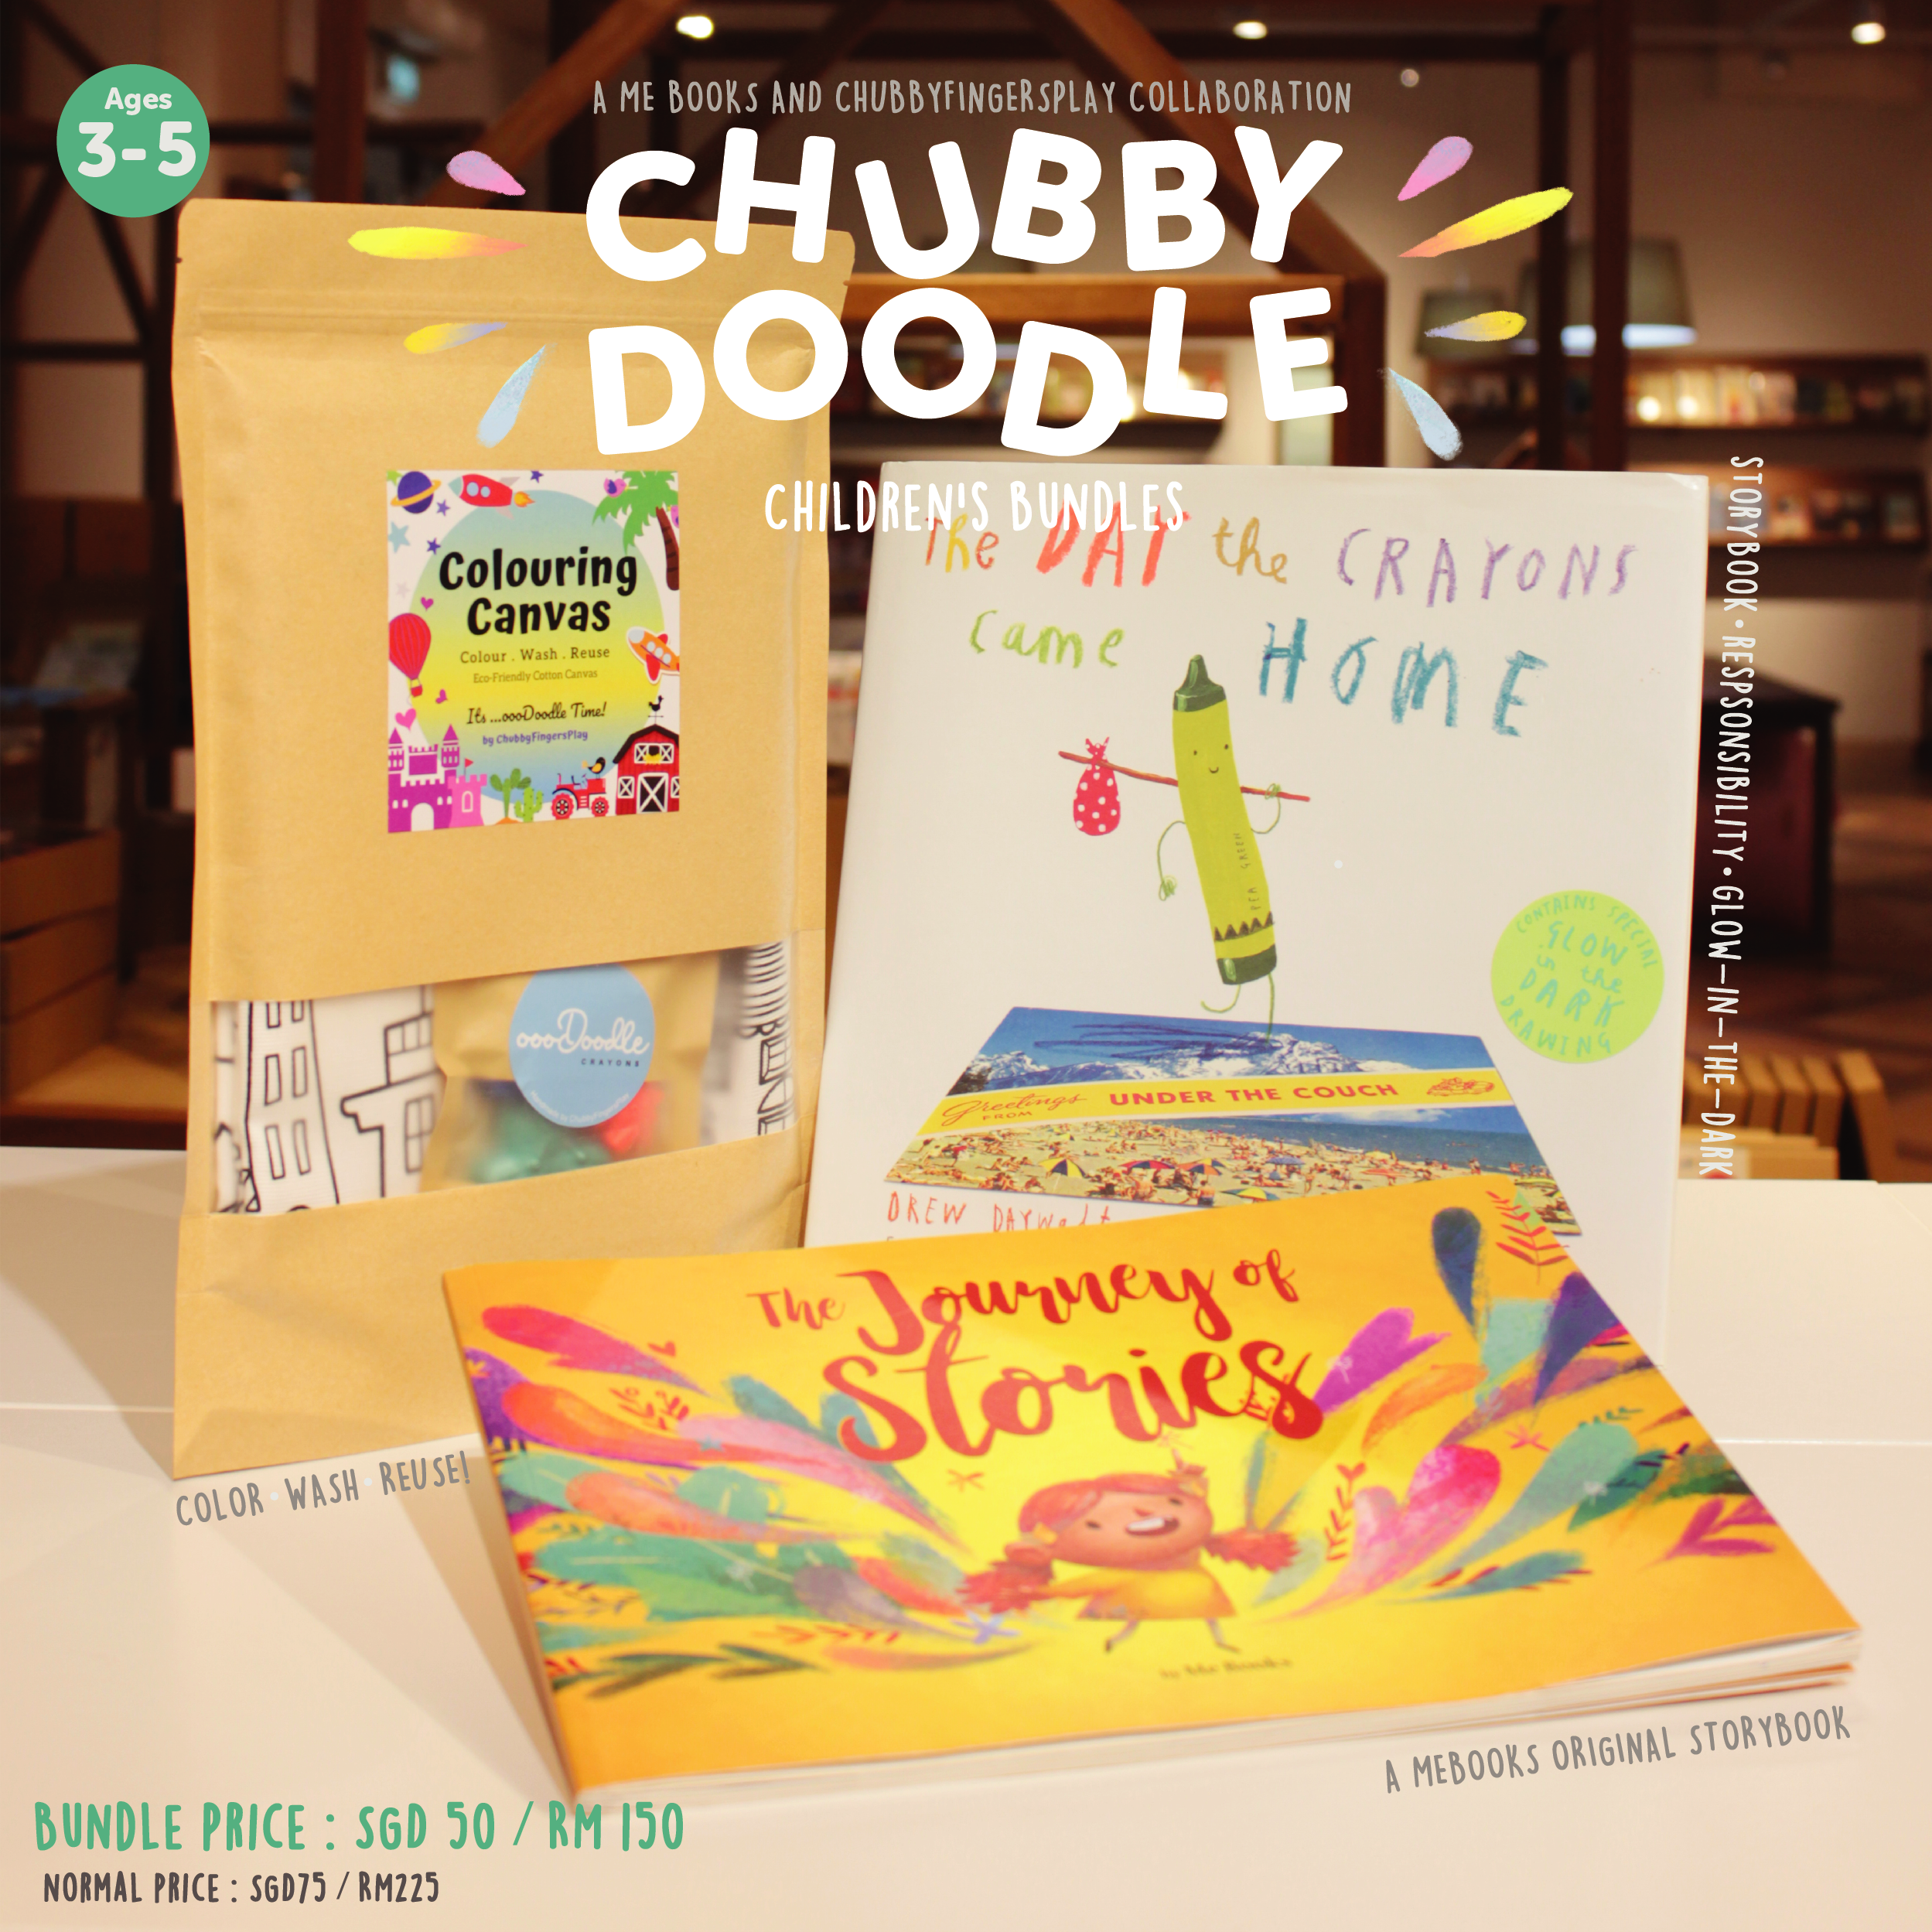 Chubby Doodle Children's Bundle